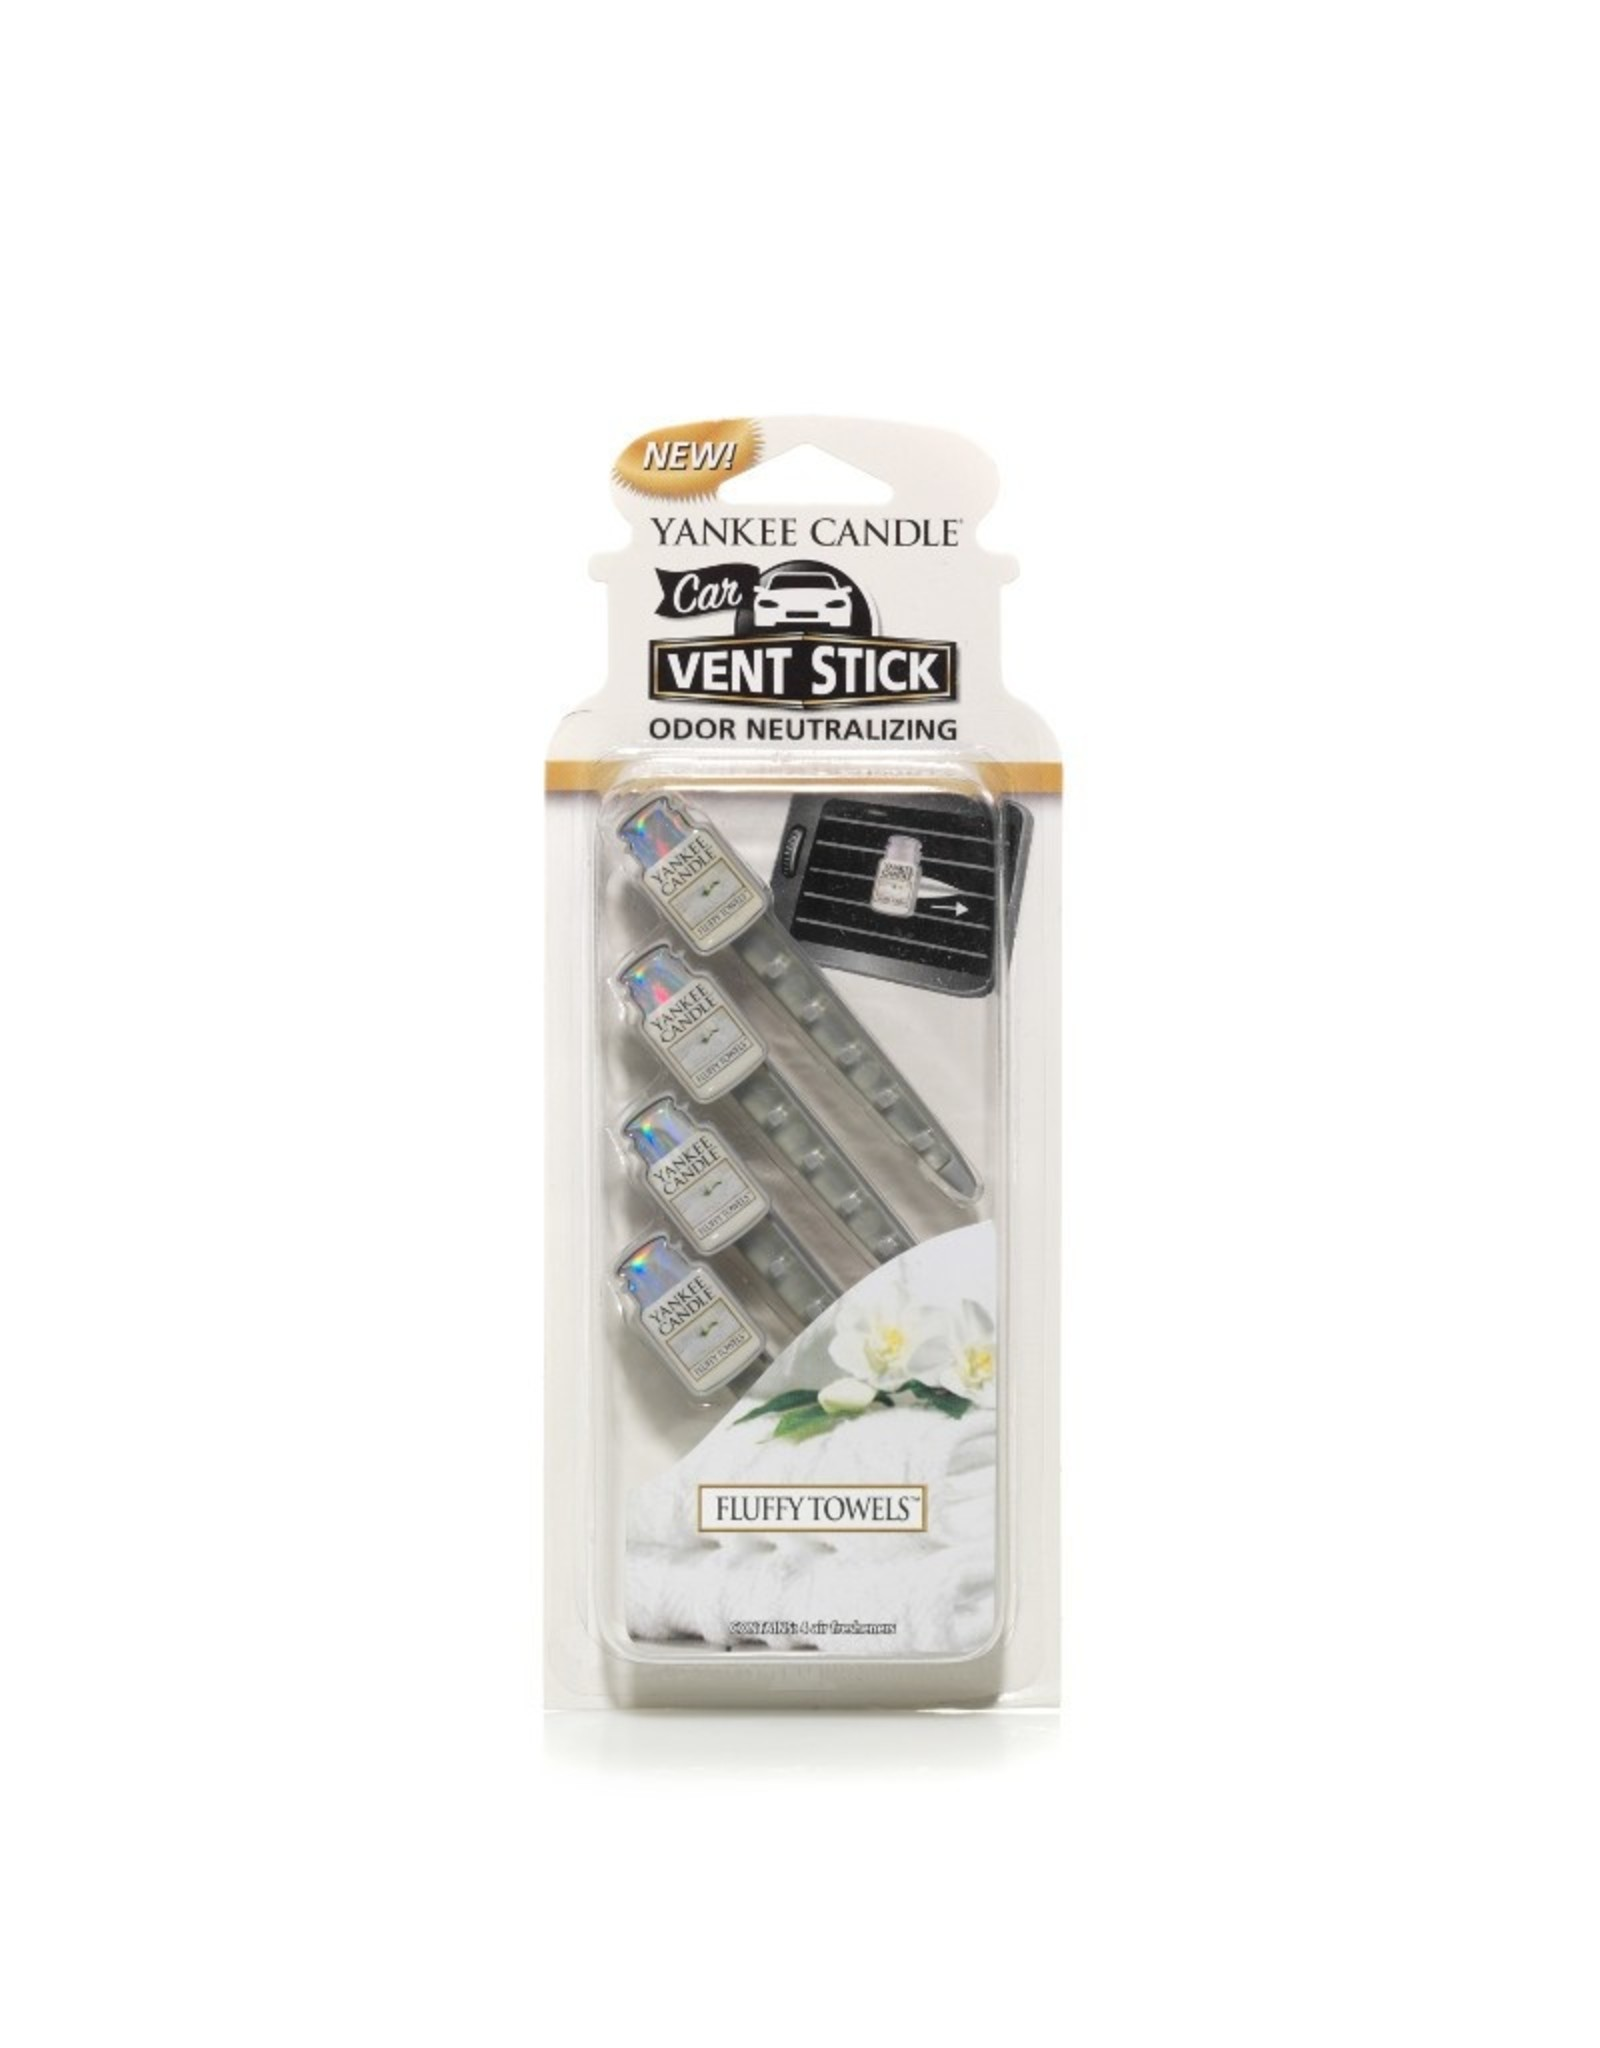 Yankee Candle Fluffy Towels Vent Stick